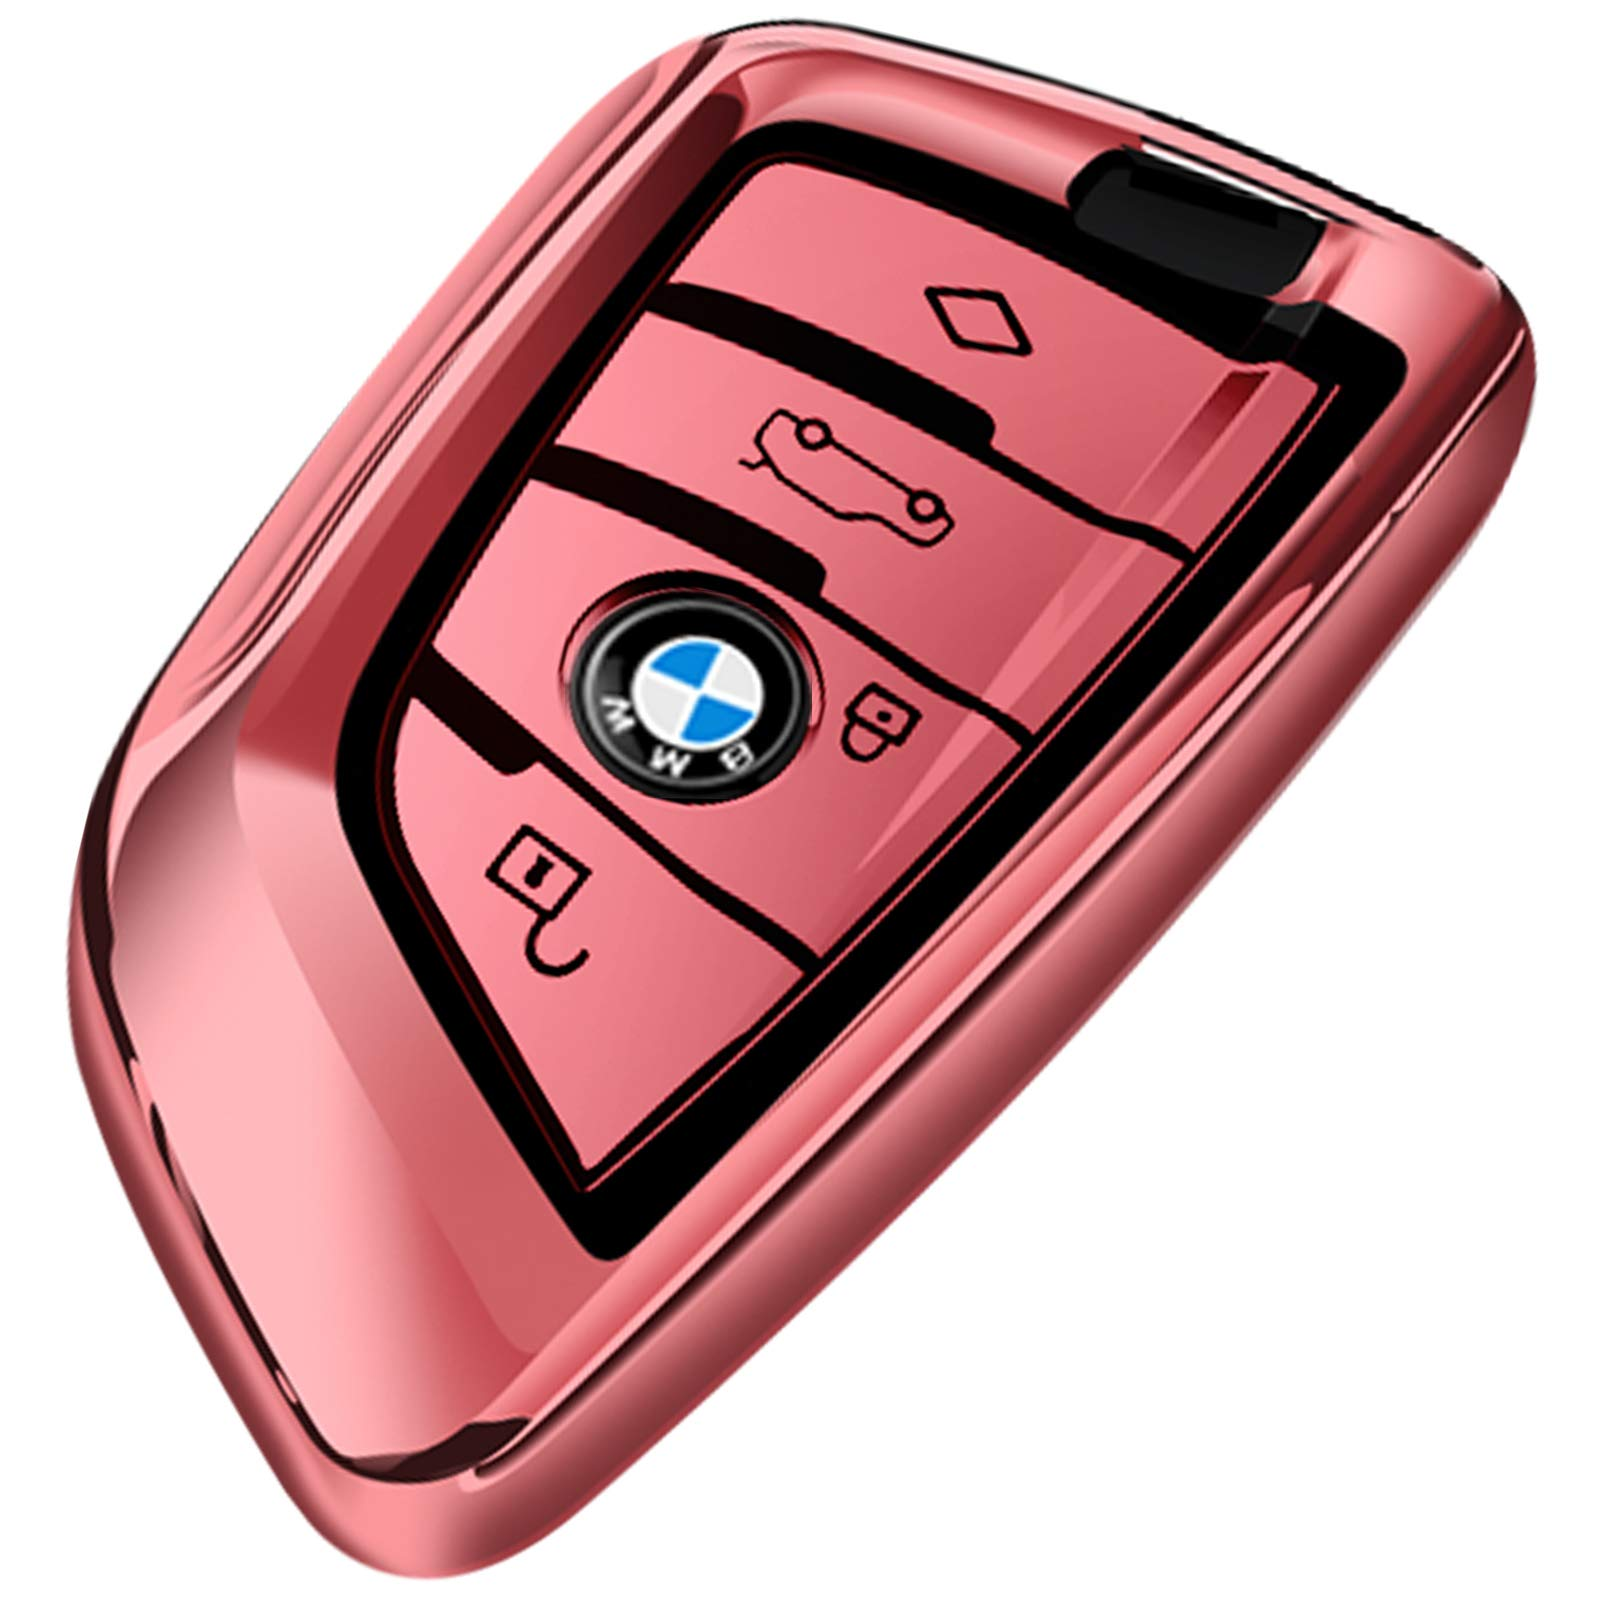 Uxinuo for BMW Key Fob Cover Full Protection Soft TPU Key Fob Case Compatible with BMW X1 X2 X3 X5 X6 and 5 Series 2018 7 Series 2017 up 2 Series and 6 Series (GT) Keyless Entry Rose Gold